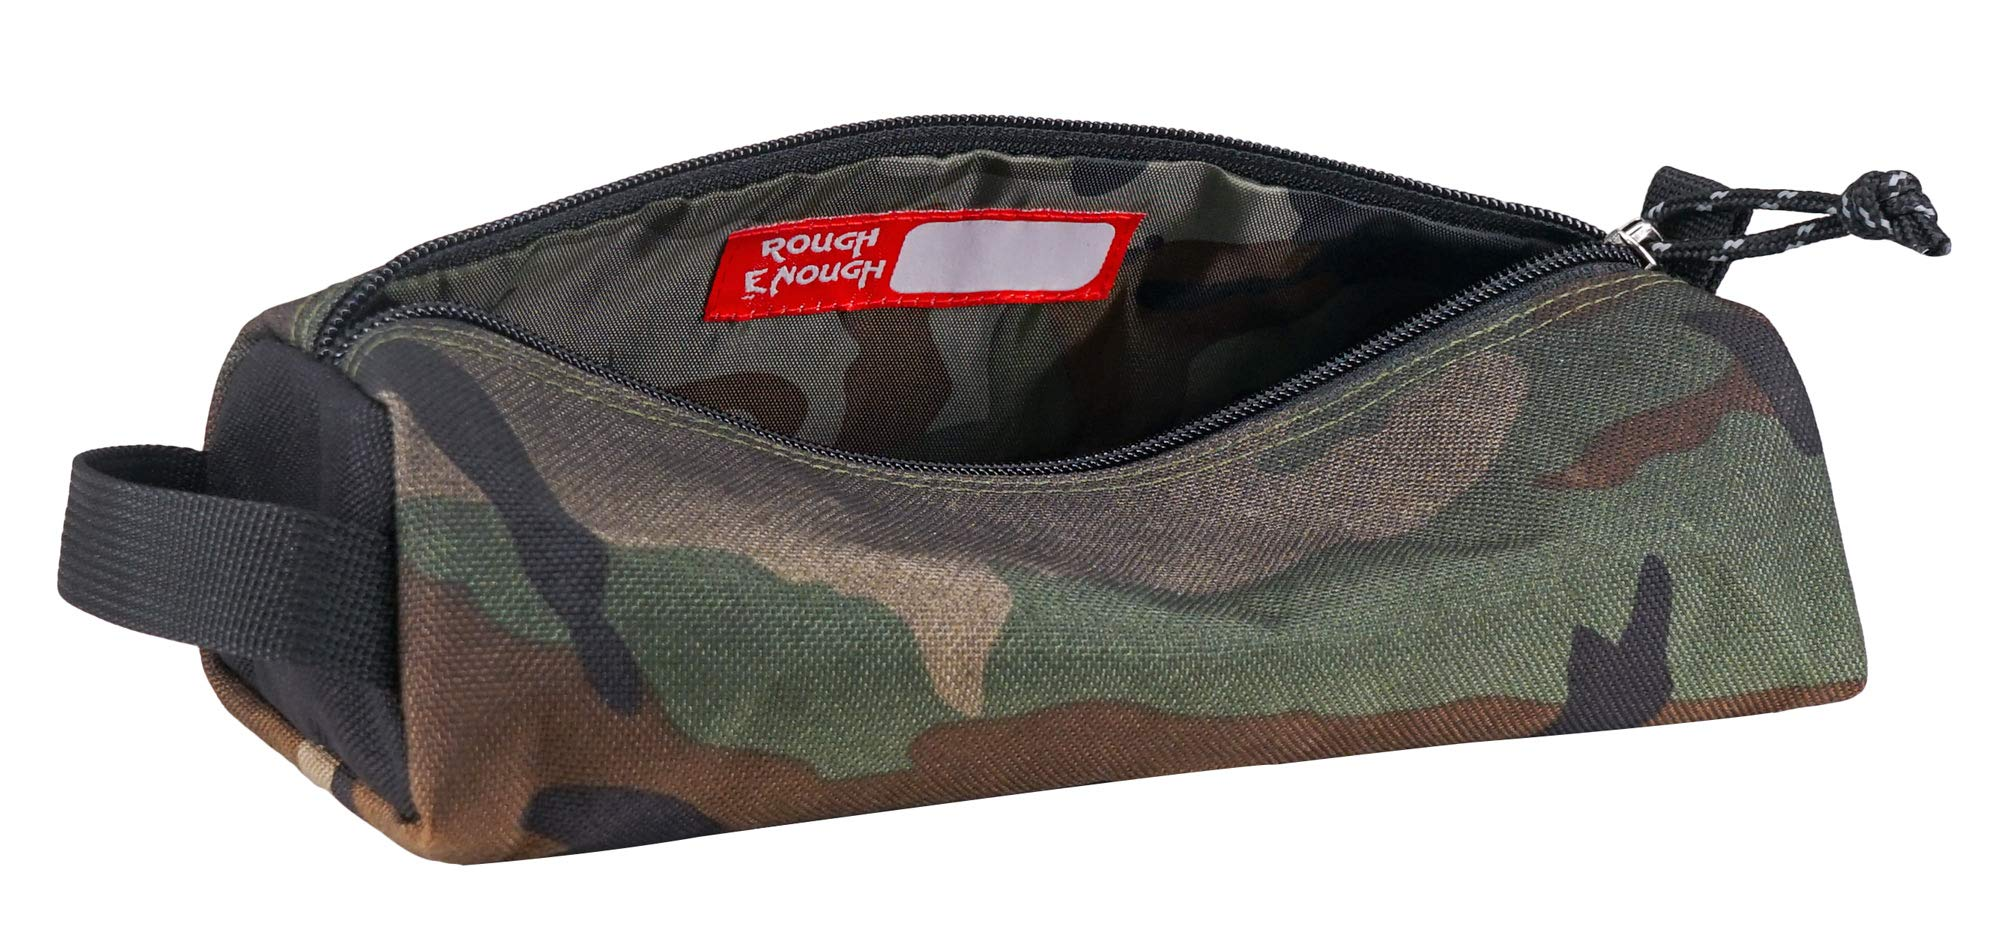 Rough Enough Camo Large Big Zipper Pencil Case Pouch Holder Bag Box for Boys Girls Kids Teen Women Men Art Supplies Case in Outdoor Fabric with Special Screen print for Travel School Stationery Car by RE ROUGH ENOUGH